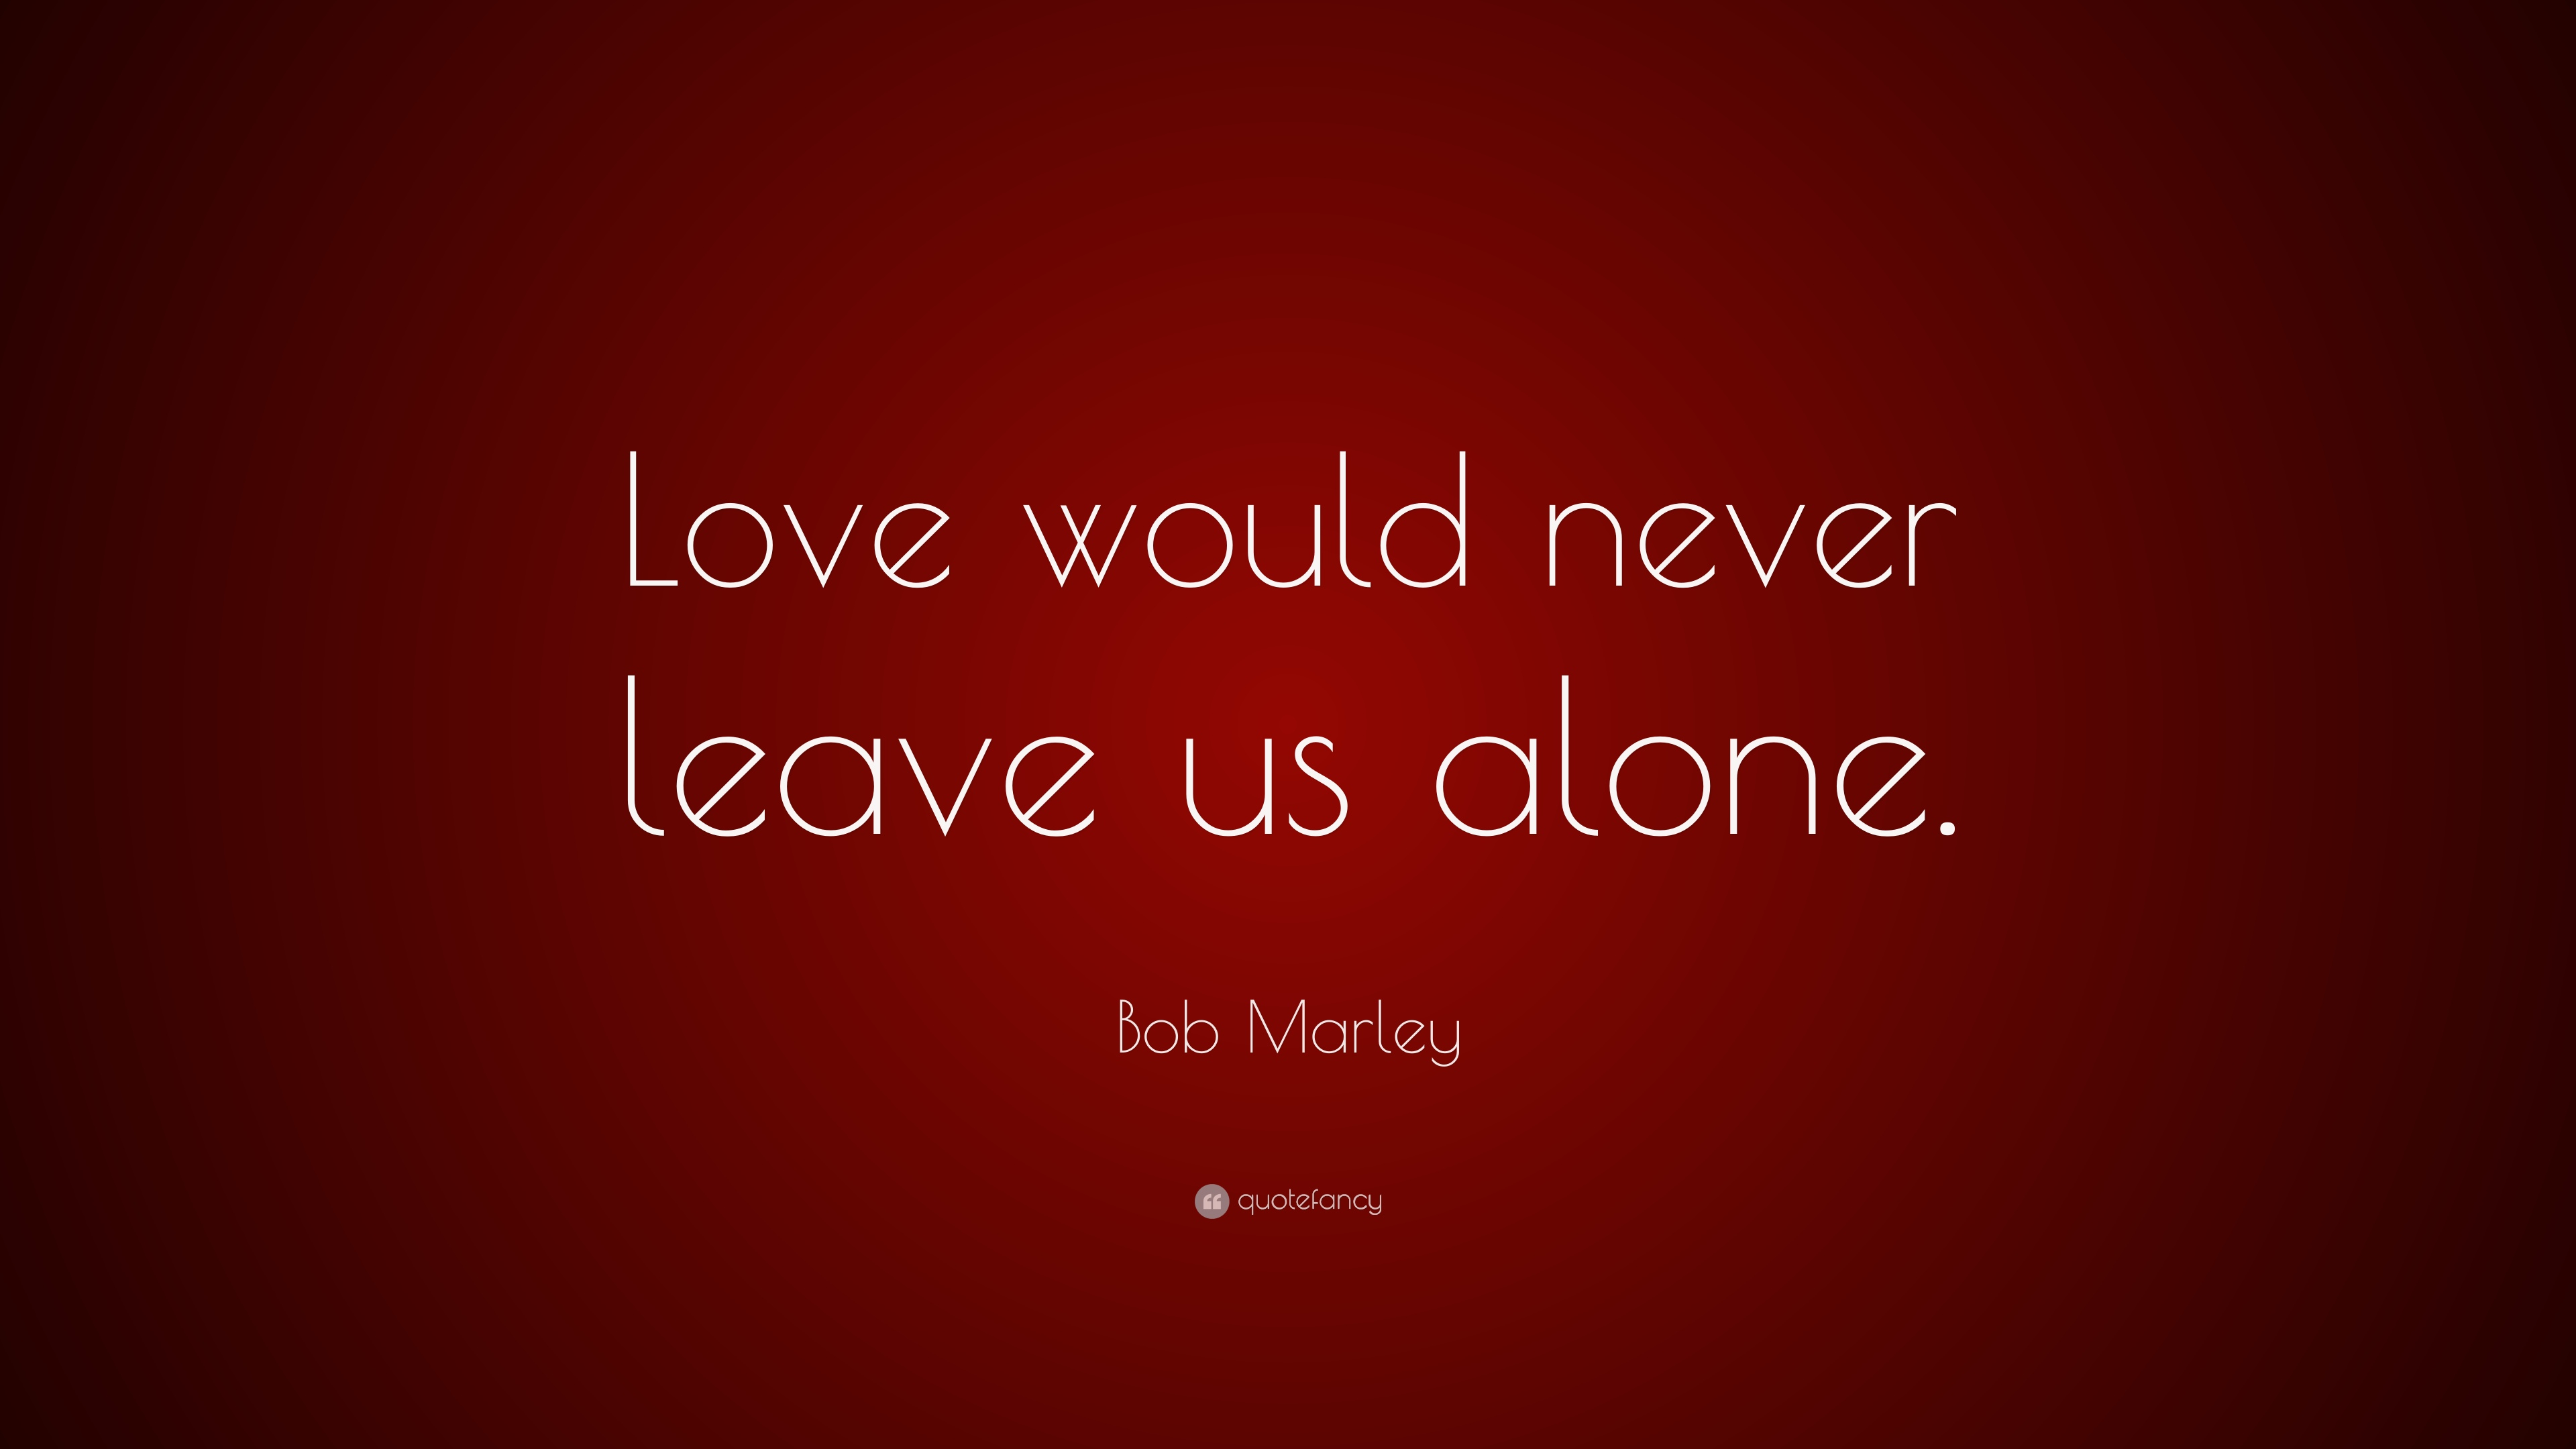 Bob Marley Love Quotes | Bob Marley Quote Love Would Never Leave Us Alone 11 Wallpapers